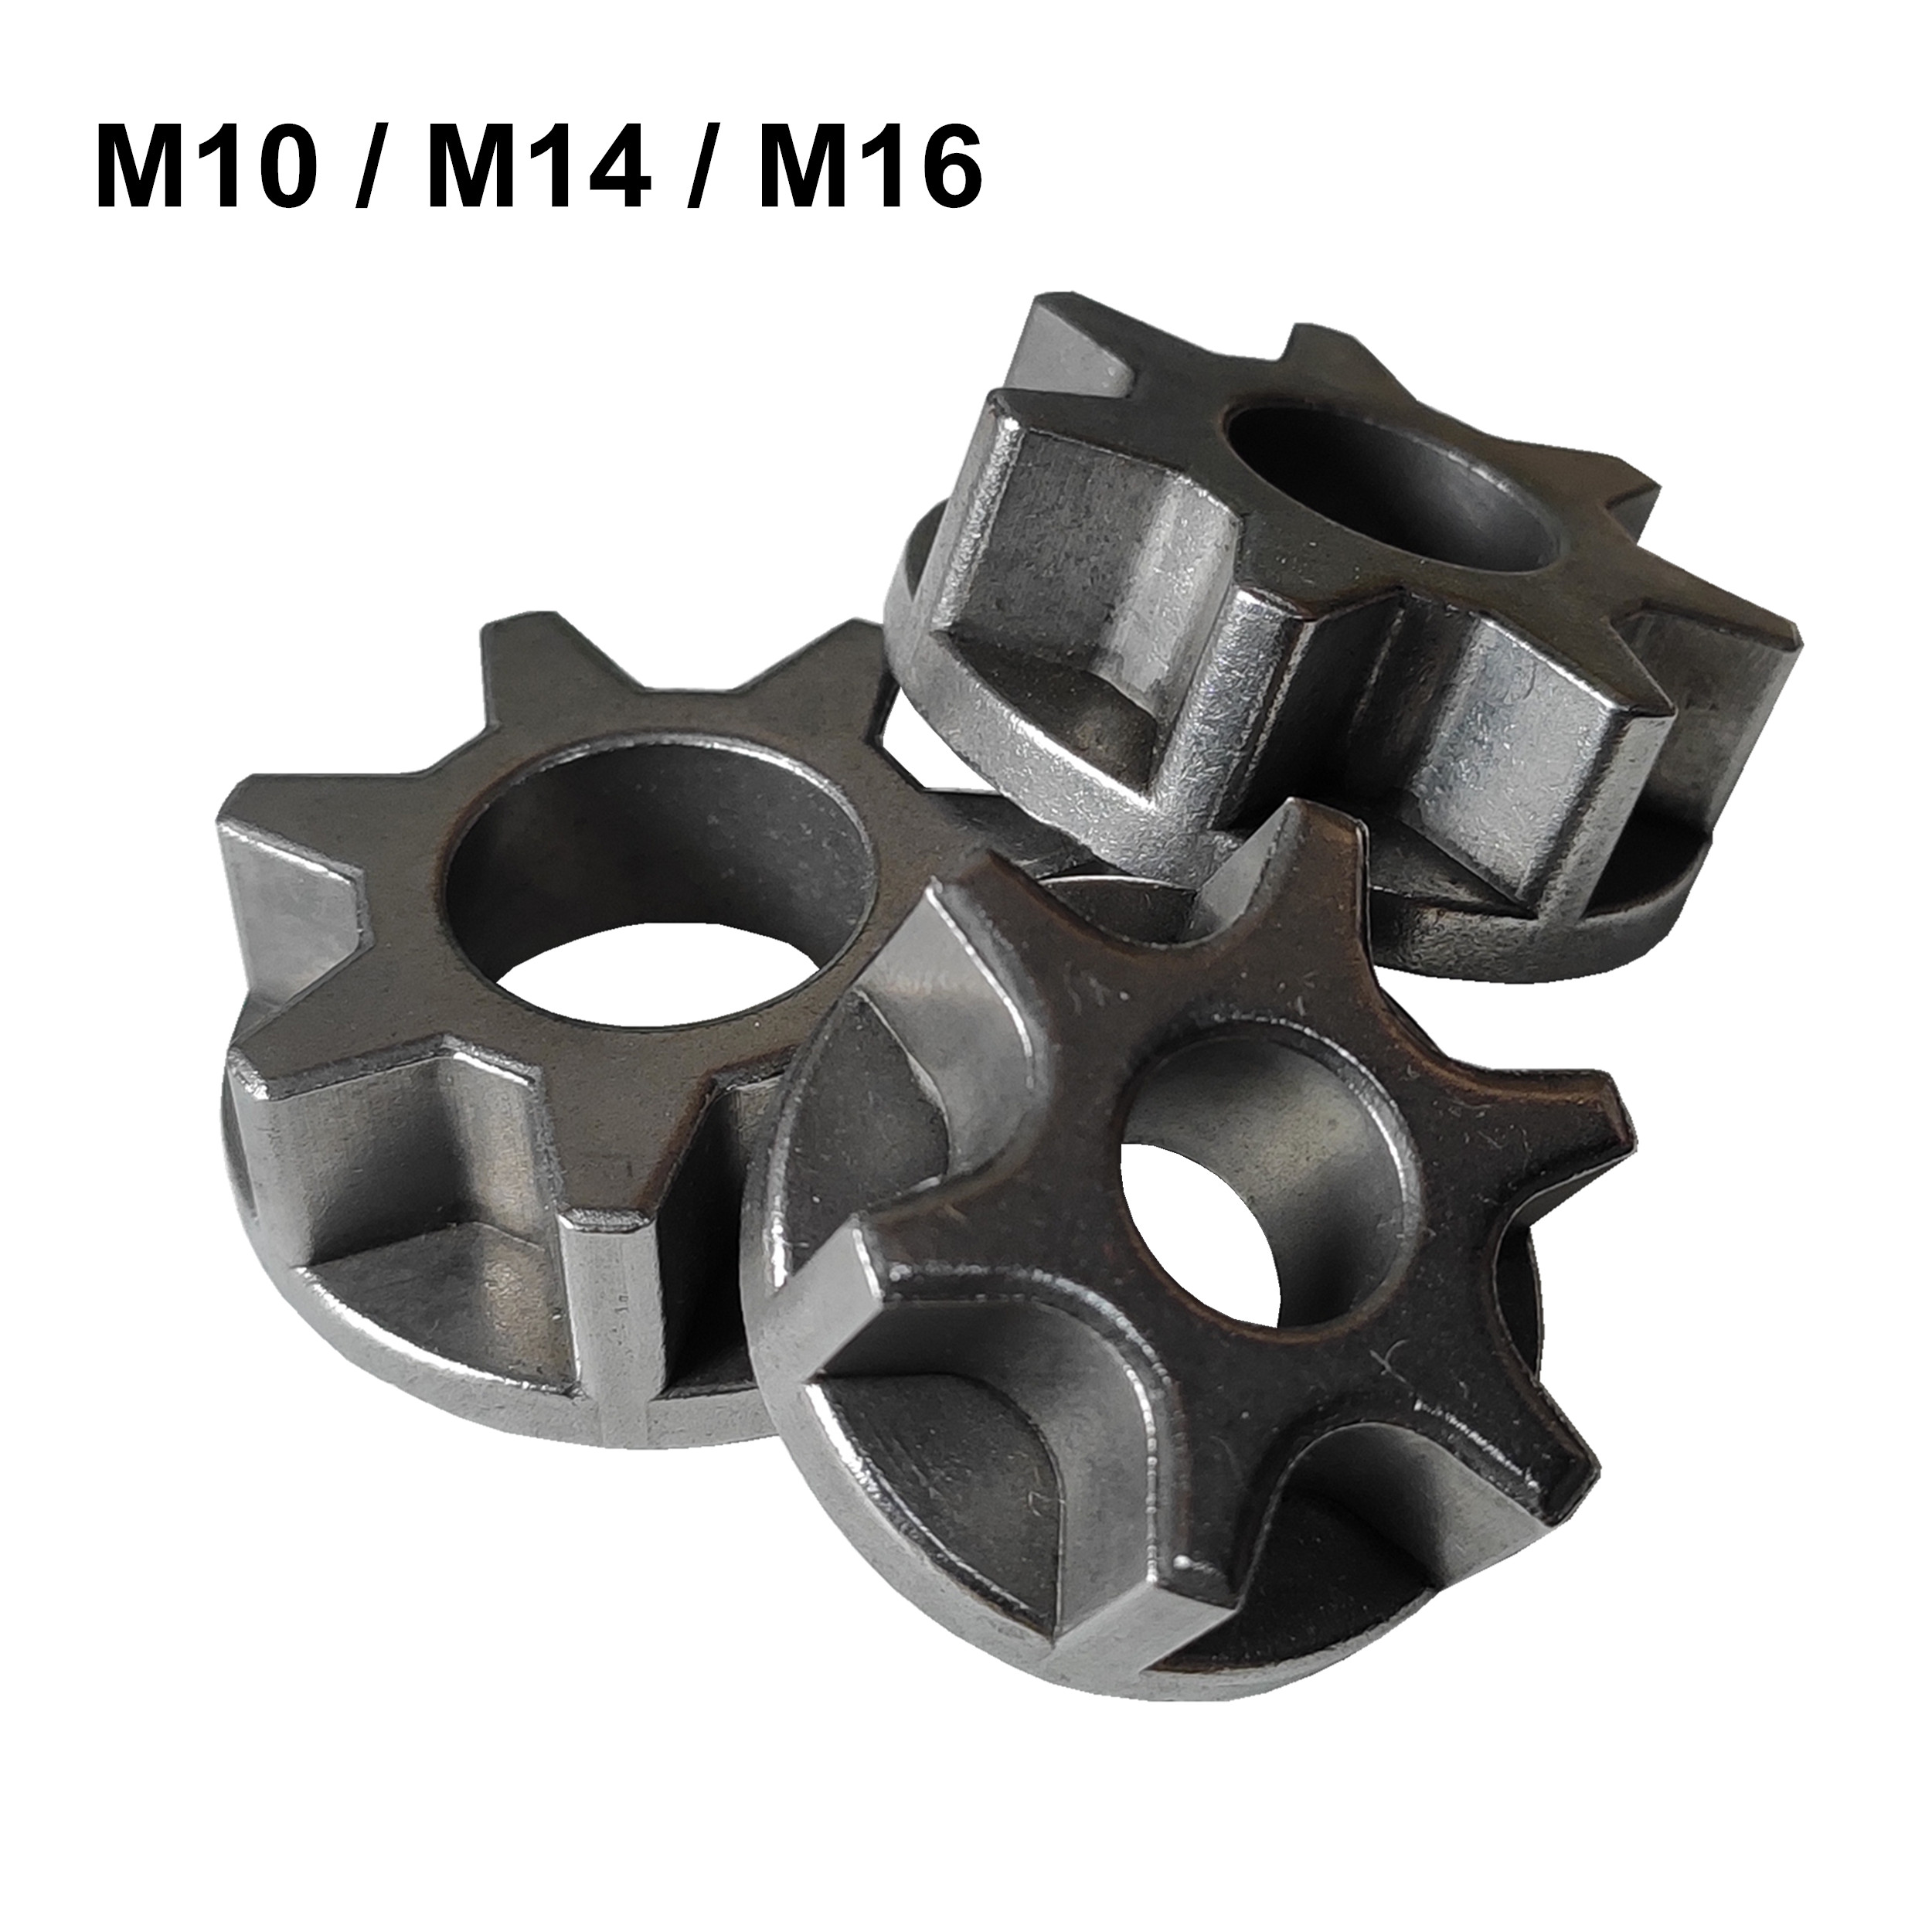 M10/M14/M16 Chainsaw Gear 100 115 125 150 180 Angle Grinder Replacement Gear Chainsaw Bracket Asterisk Power Tool Accessories